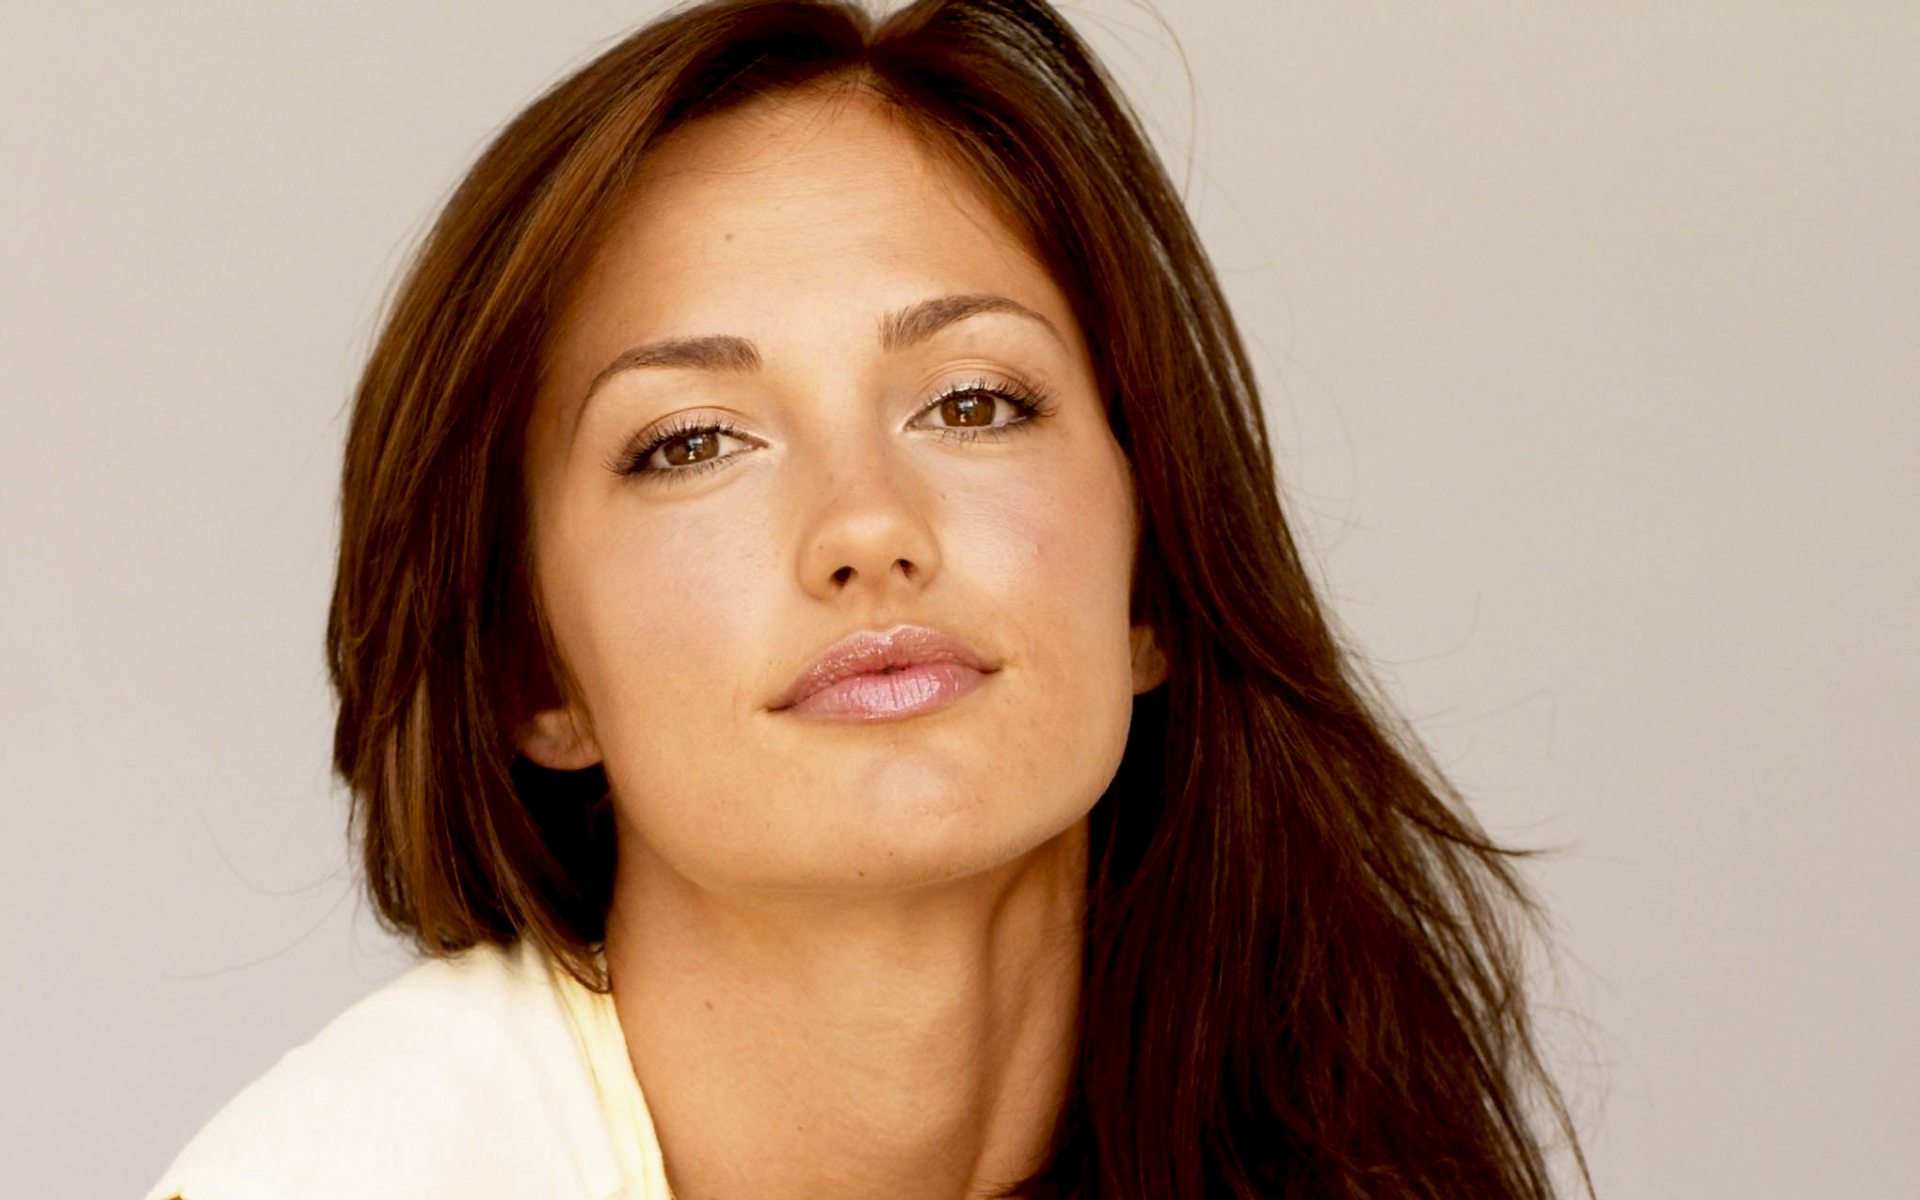 Another Reason to Masturbate 1: Minka Kelly Minka_kelly_1920_1200_oct182009-1-